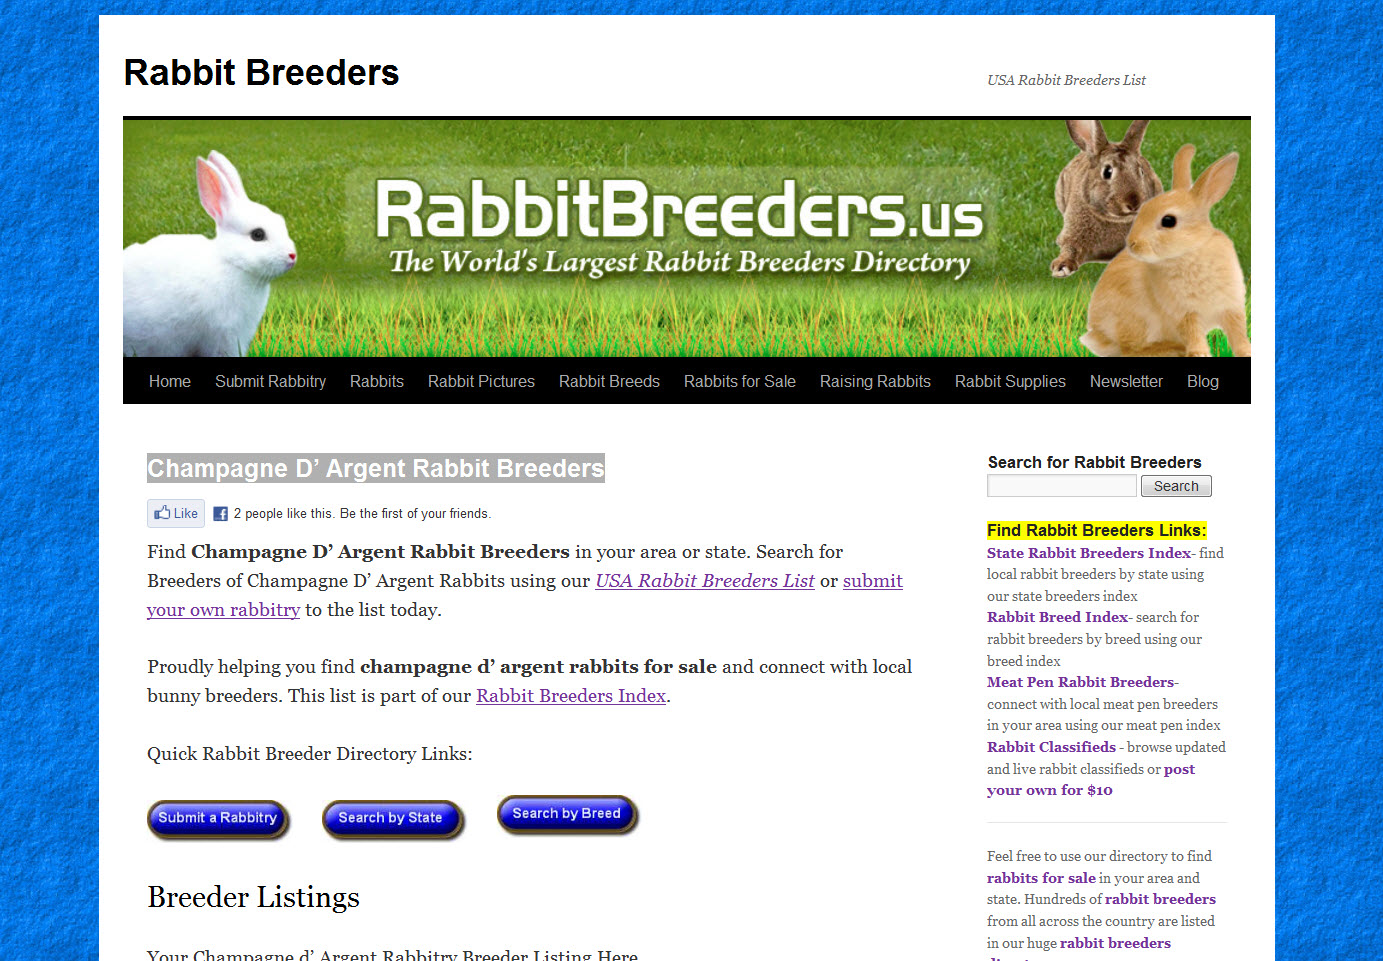 Champagne D' Argent Rabbits for Sale